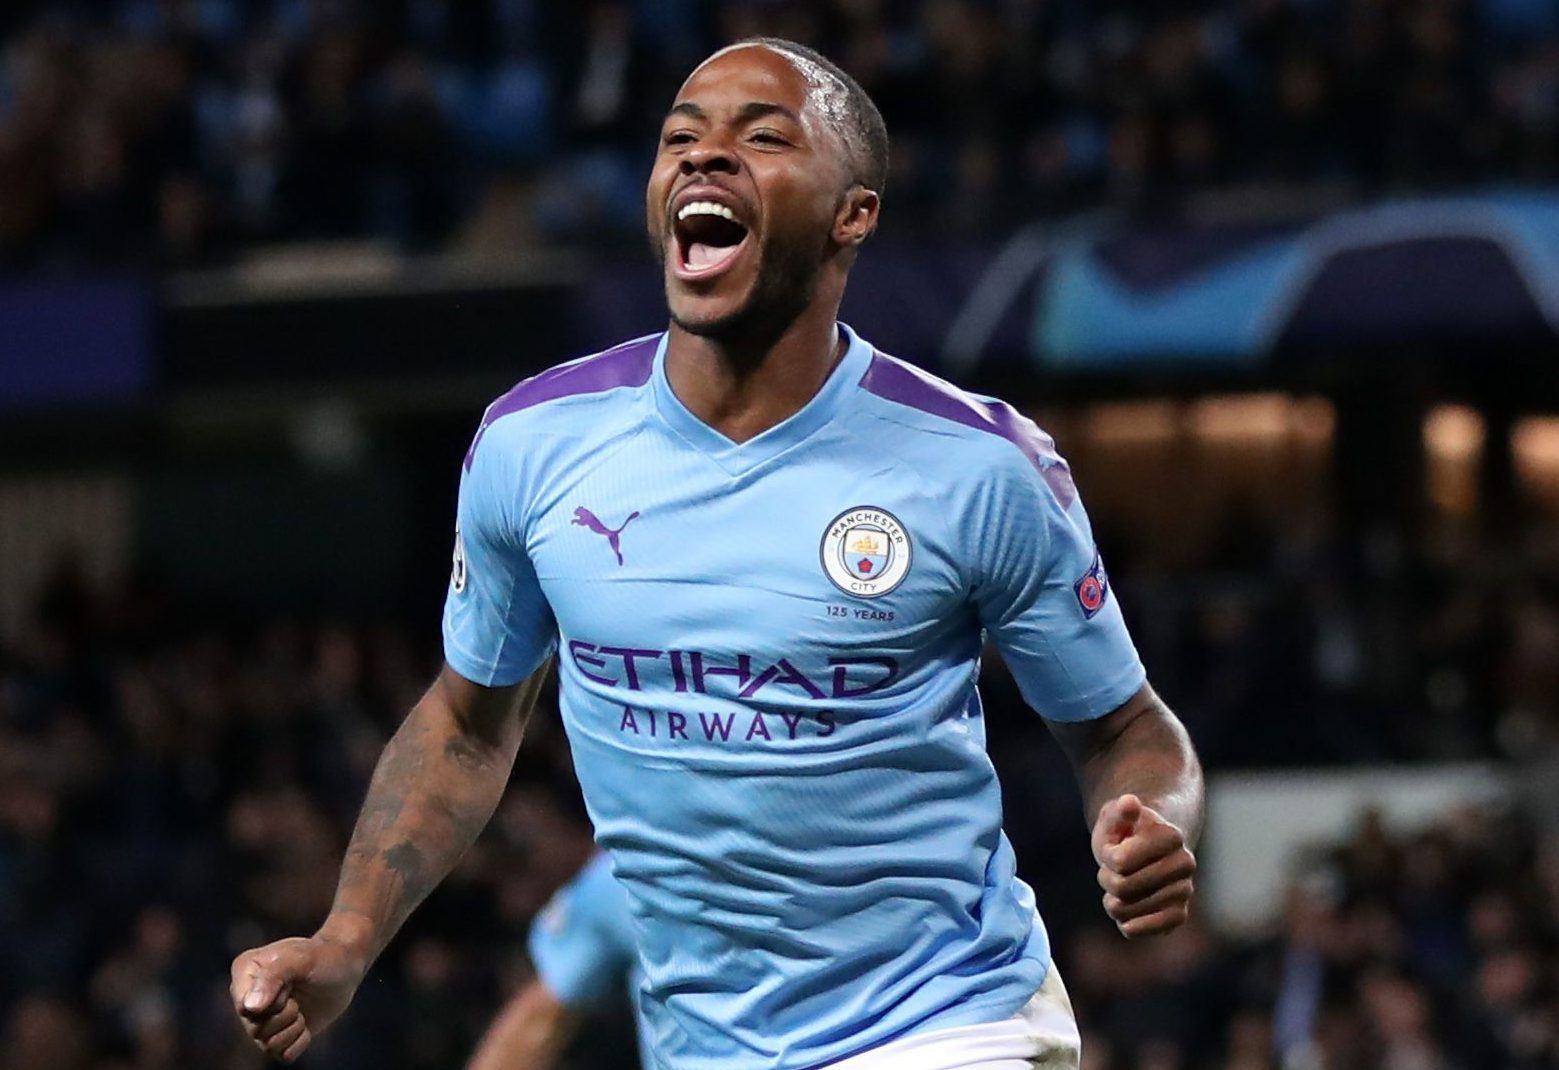 Manchester City: Guillem Balague reveals Real Madrid won't be able to buy Raheem Sterling - Bóng Đá